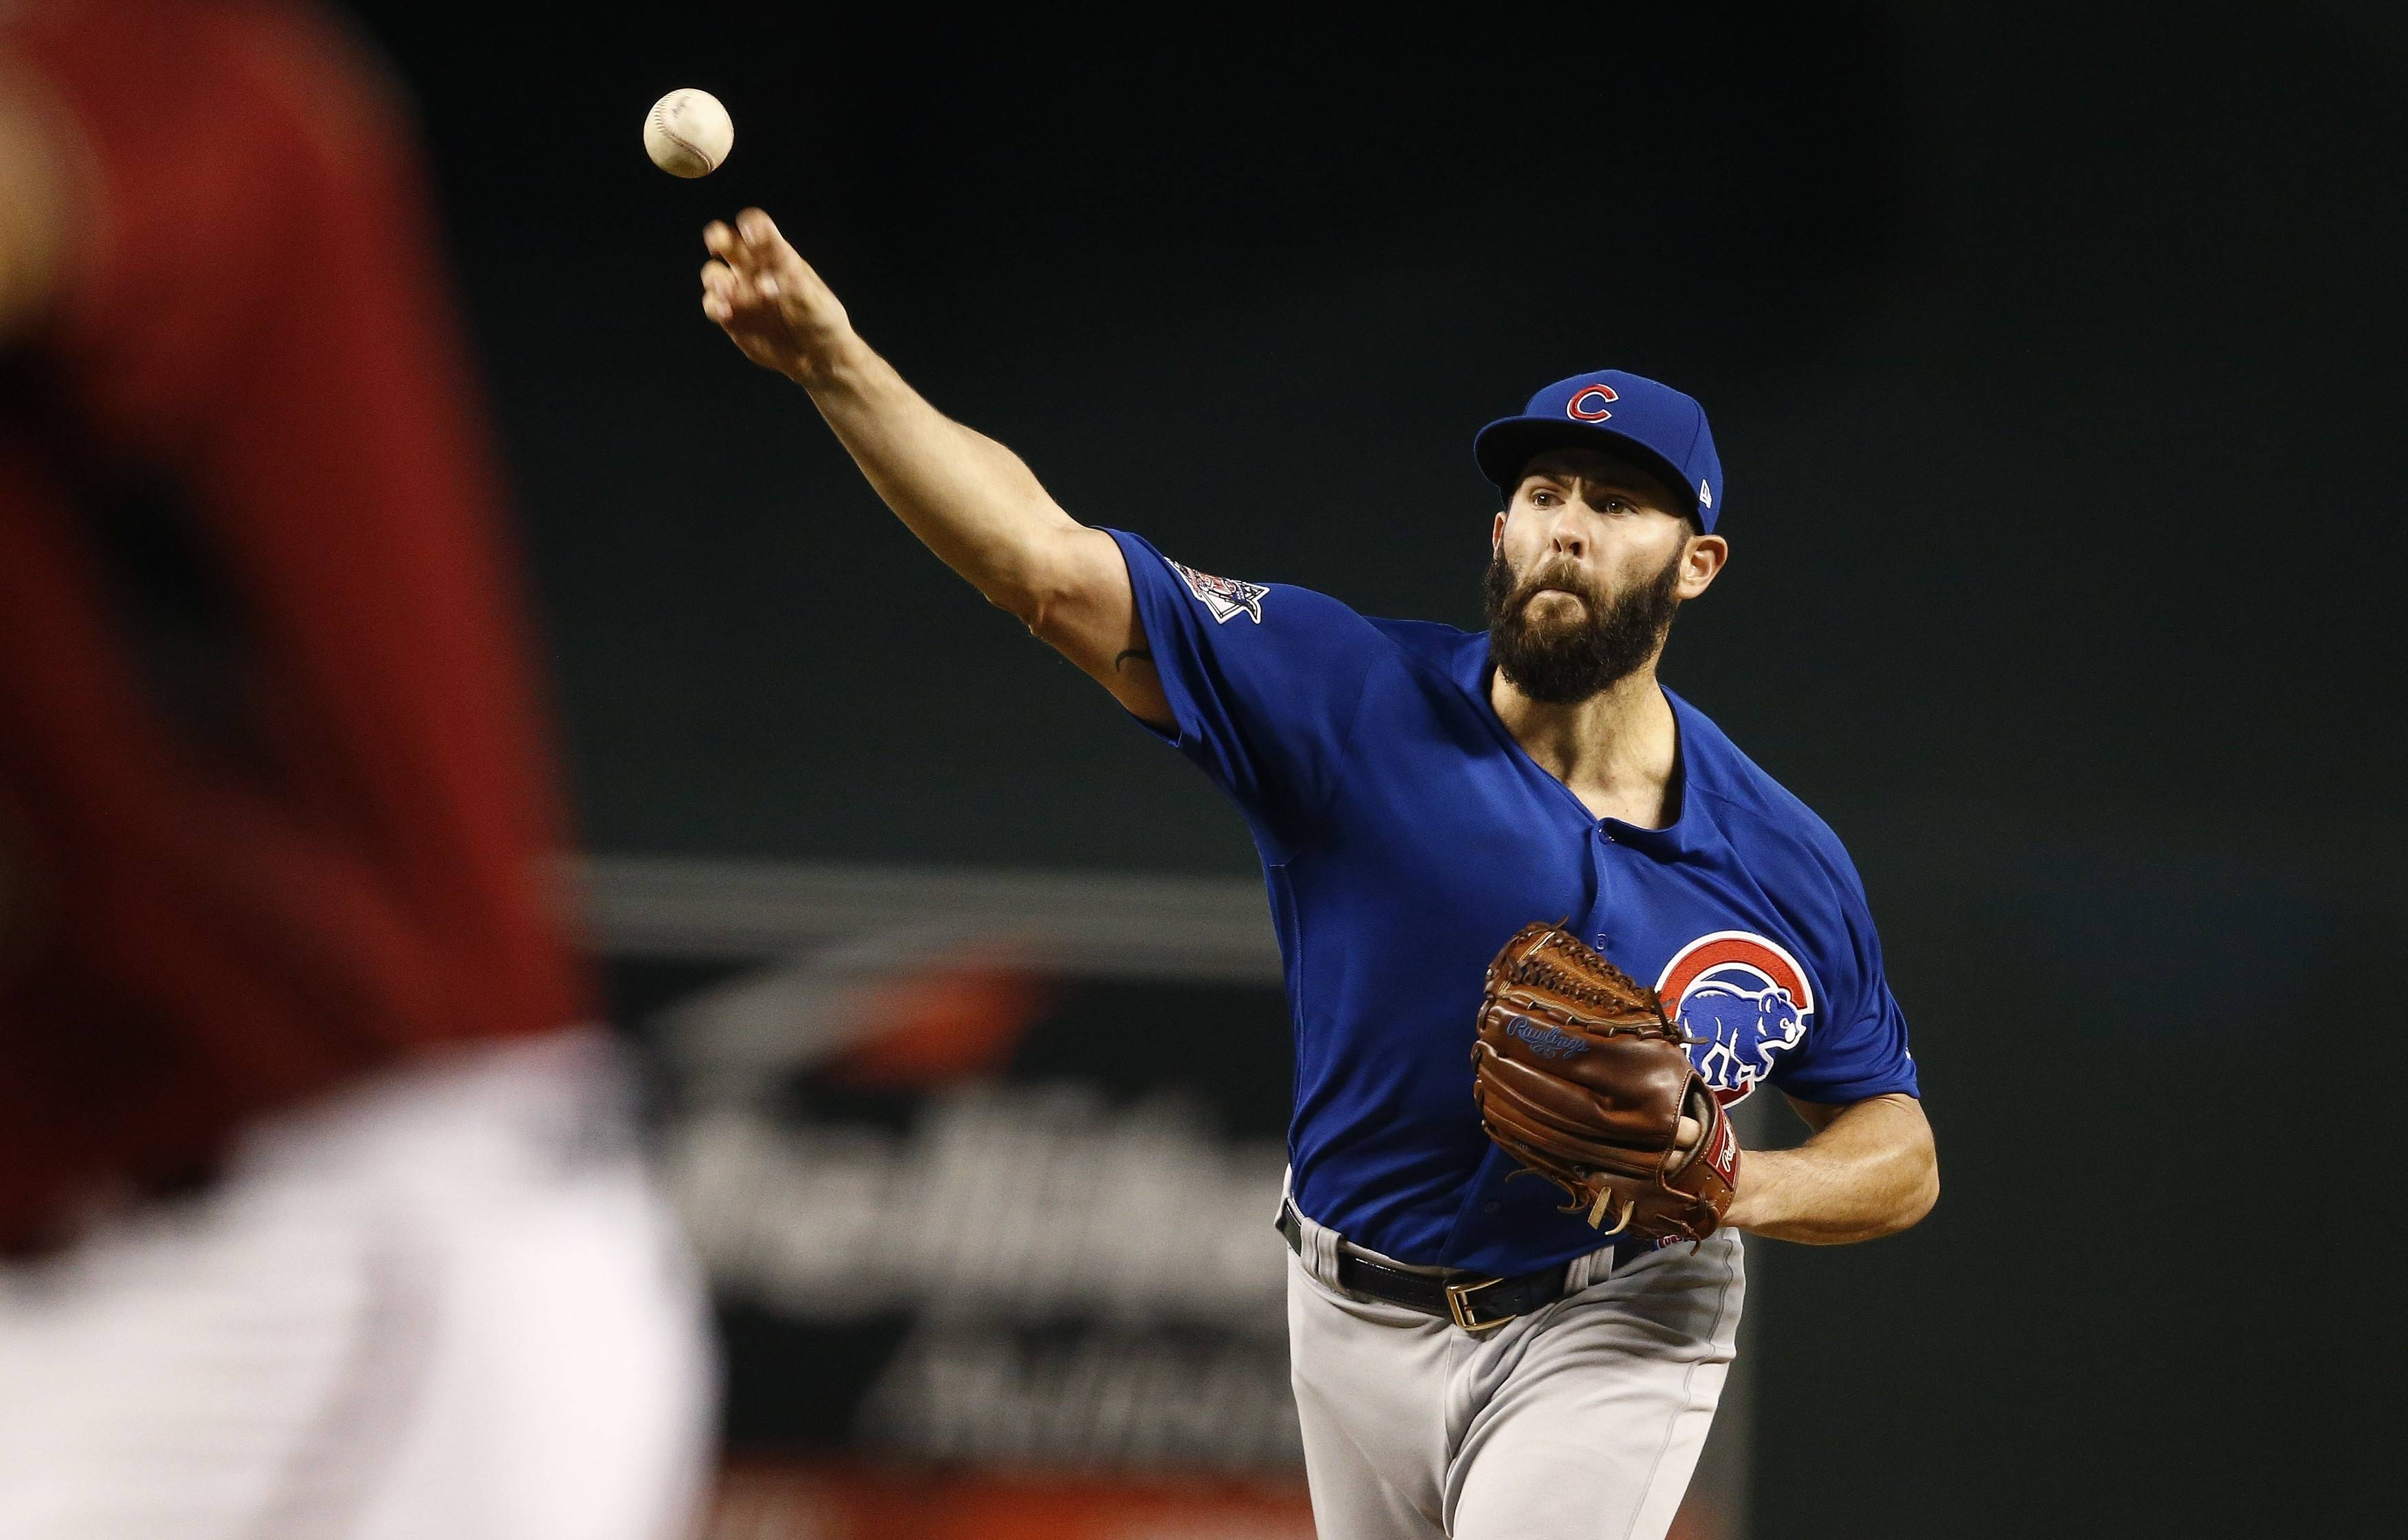 Chicago Cubs' Jake Arrieta, right, throws a pitch against Arizona Diamondbacks' David Peralta during the first inning of a baseball game Sunday, Aug 13, 2017, in Phoenix.